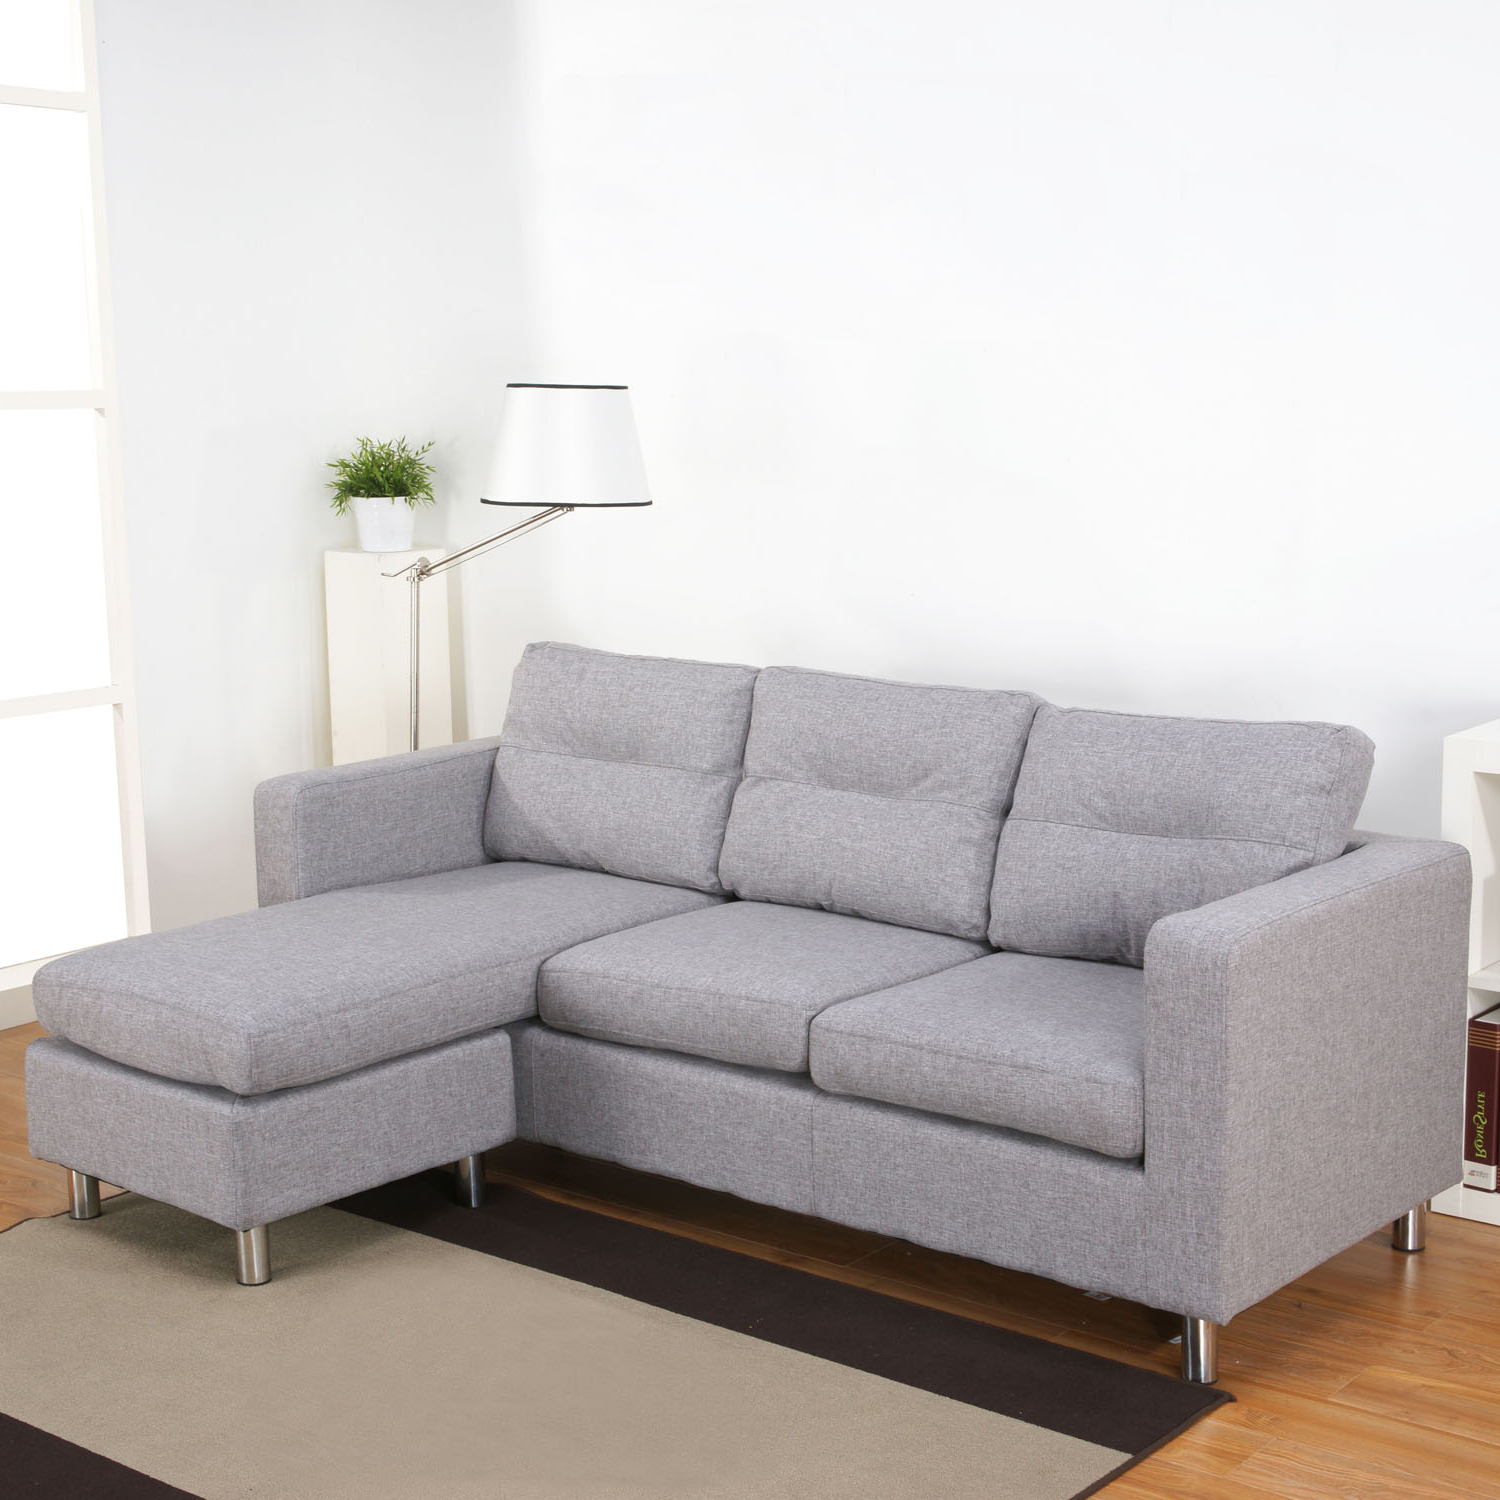 Tess 2 Piece Power Reclining Sectionals With Laf Chaise Intended For Widely Used Furniture : Gray Sectional Sofas With Chaise Tuckr Box Decors How To (Gallery 20 of 20)